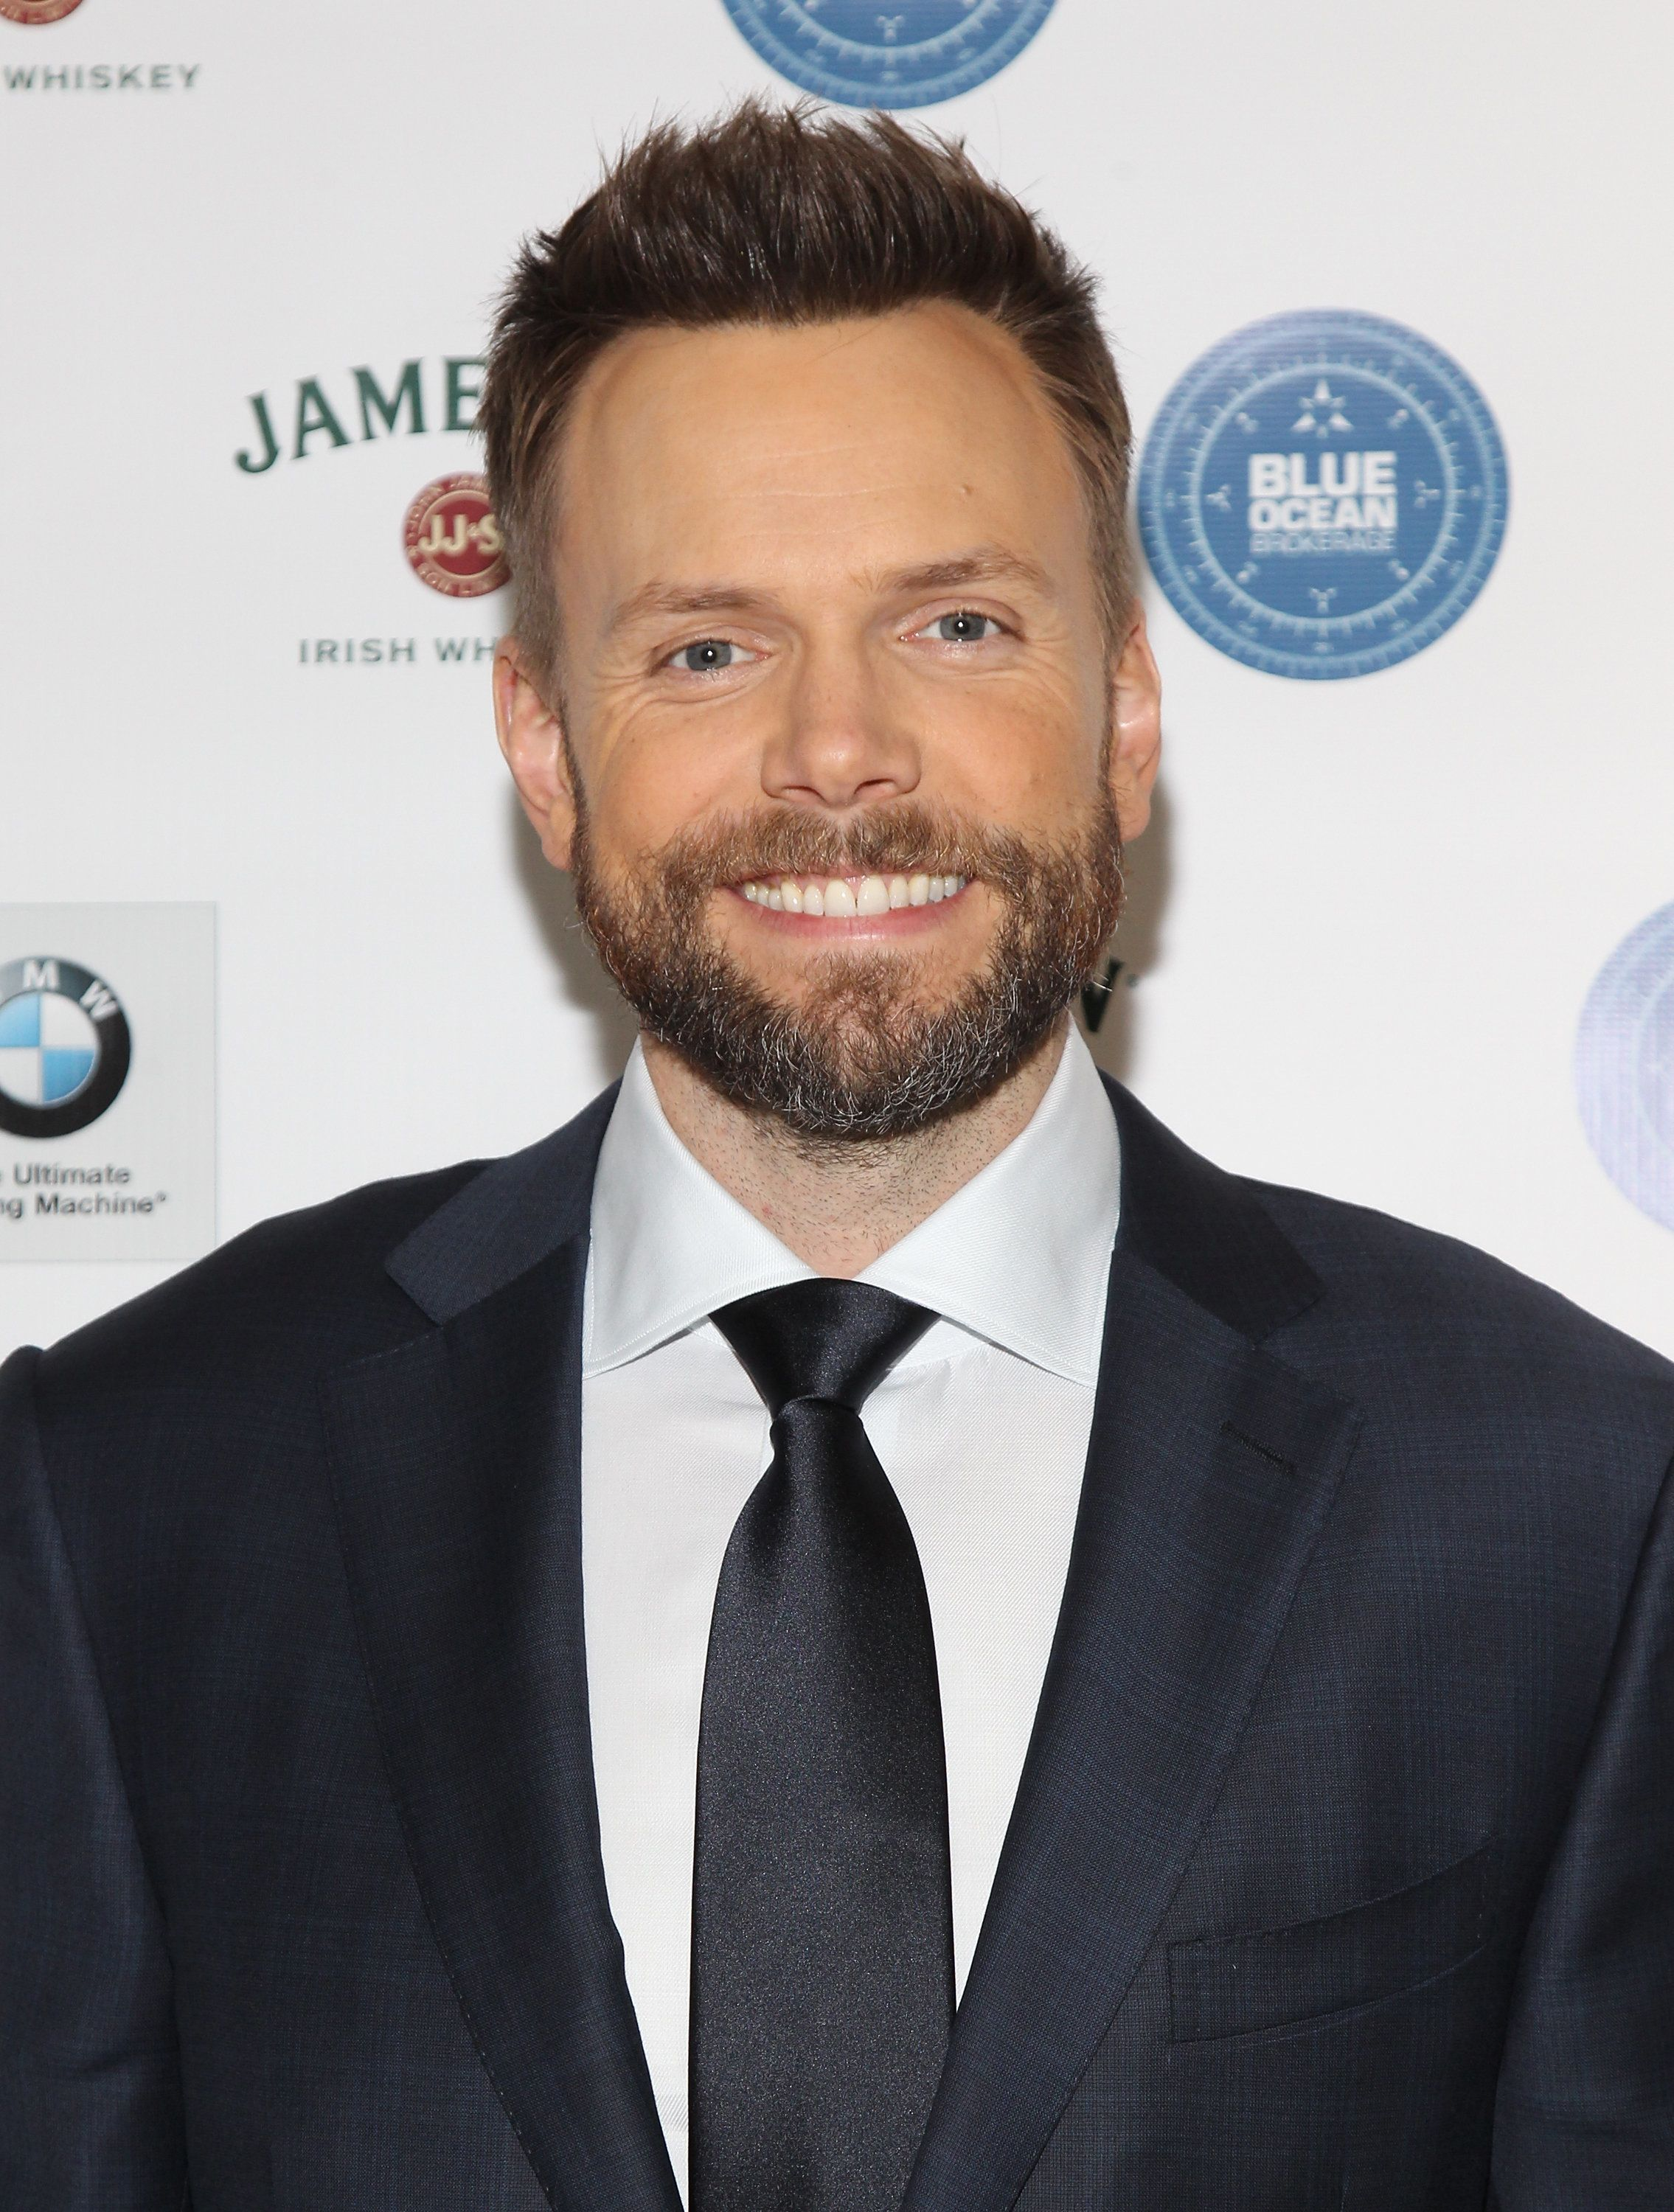 NEW YORK, NY - MARCH 10:  Actor Joel McHale attends the American Ireland Fund St. Patrick's celebration at Espace on March 10, 2016 in New York City.  (Photo by Bennett Raglin/Getty Images)